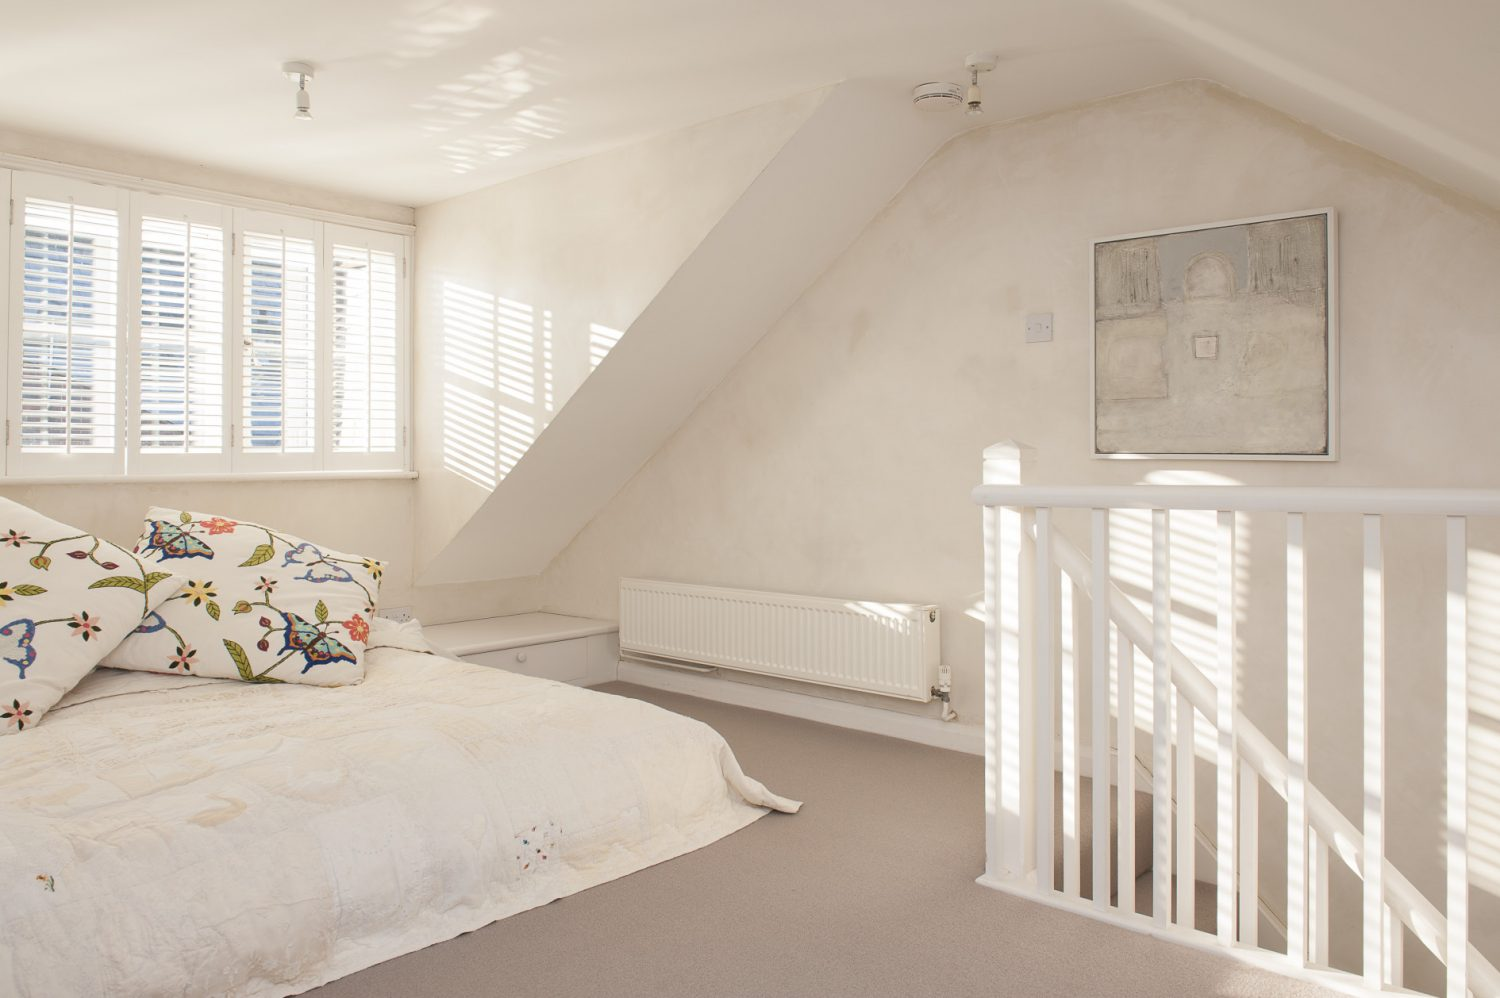 On the top floor, the master bedroom is a bright and airy sanctuary, completely free of clutter